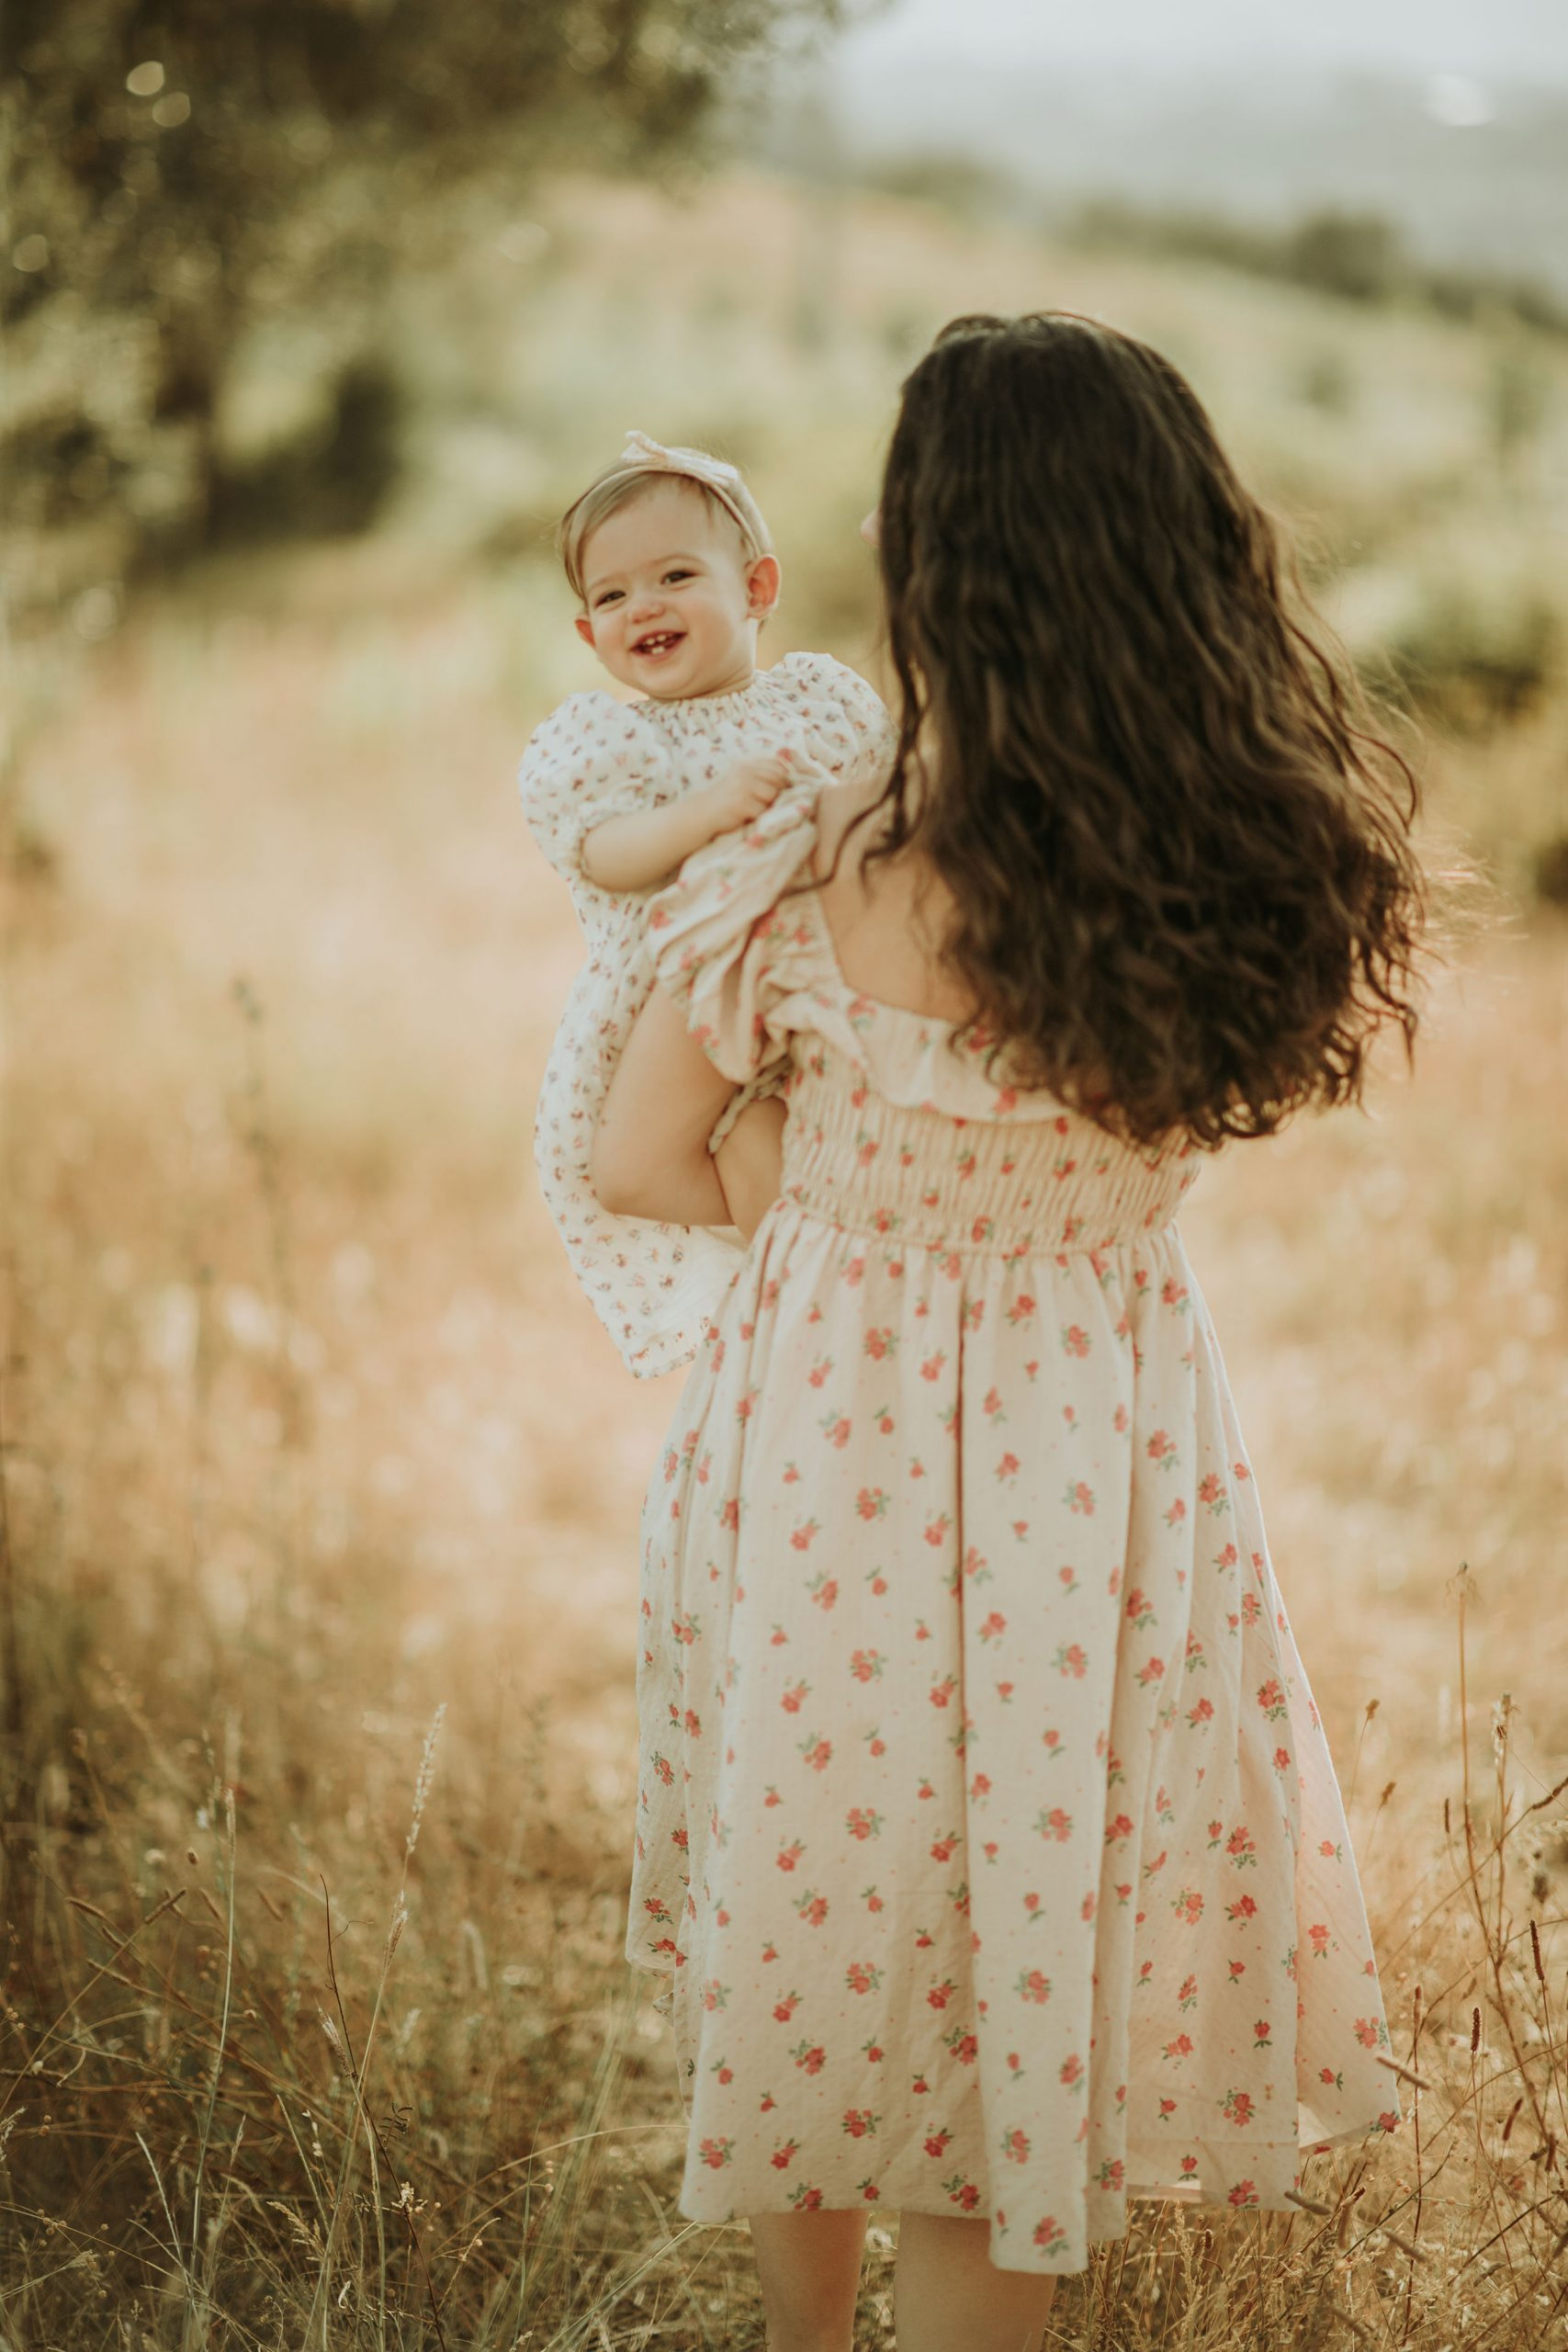 Mother and daughter nature photoshoot